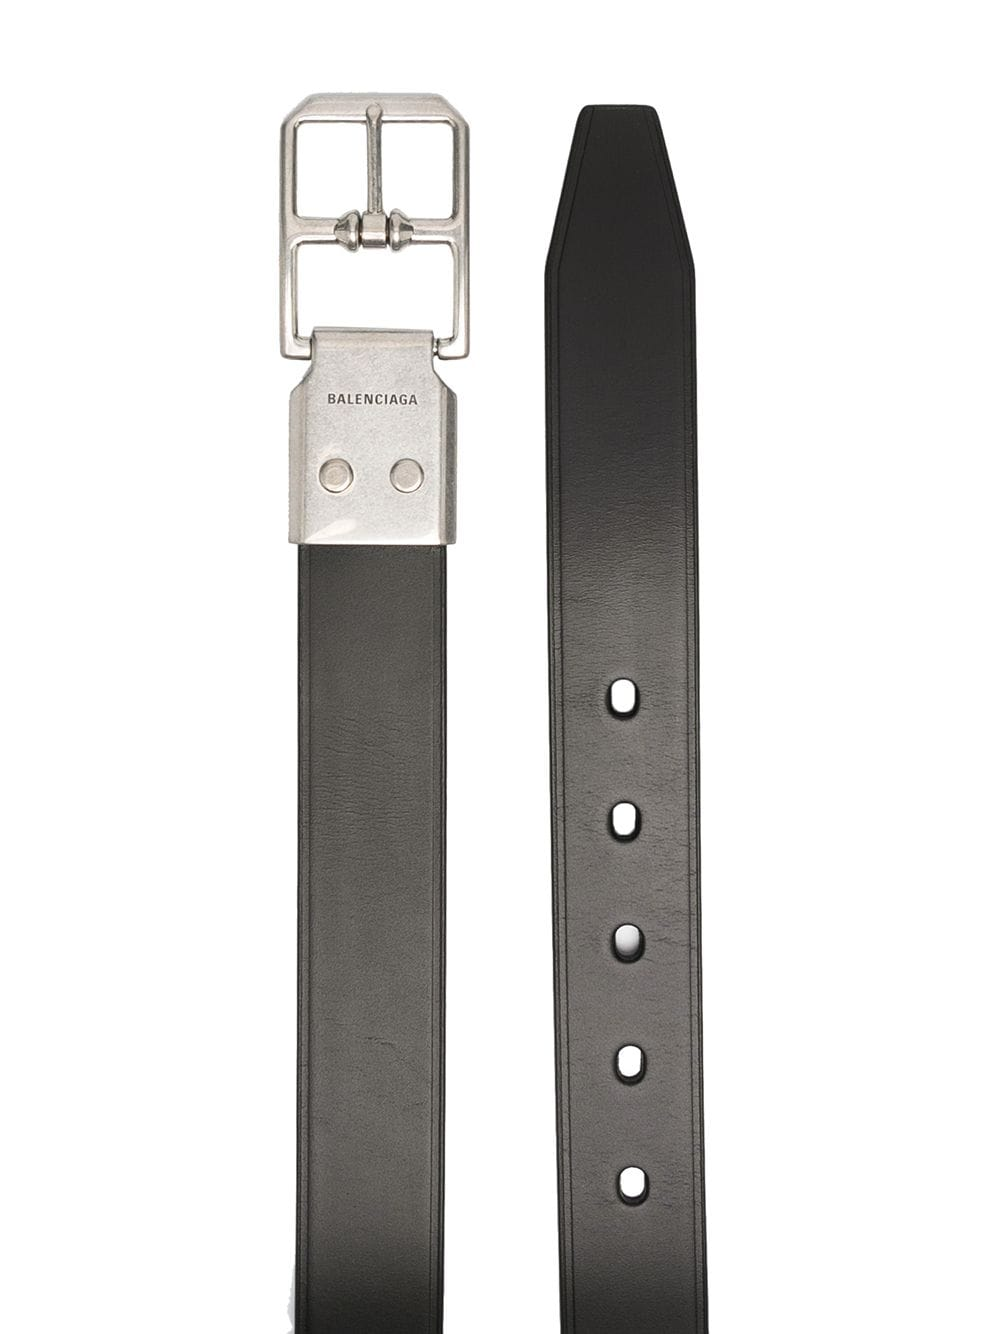 BALENCIAGA Leather Belt Black - Maison De Fashion